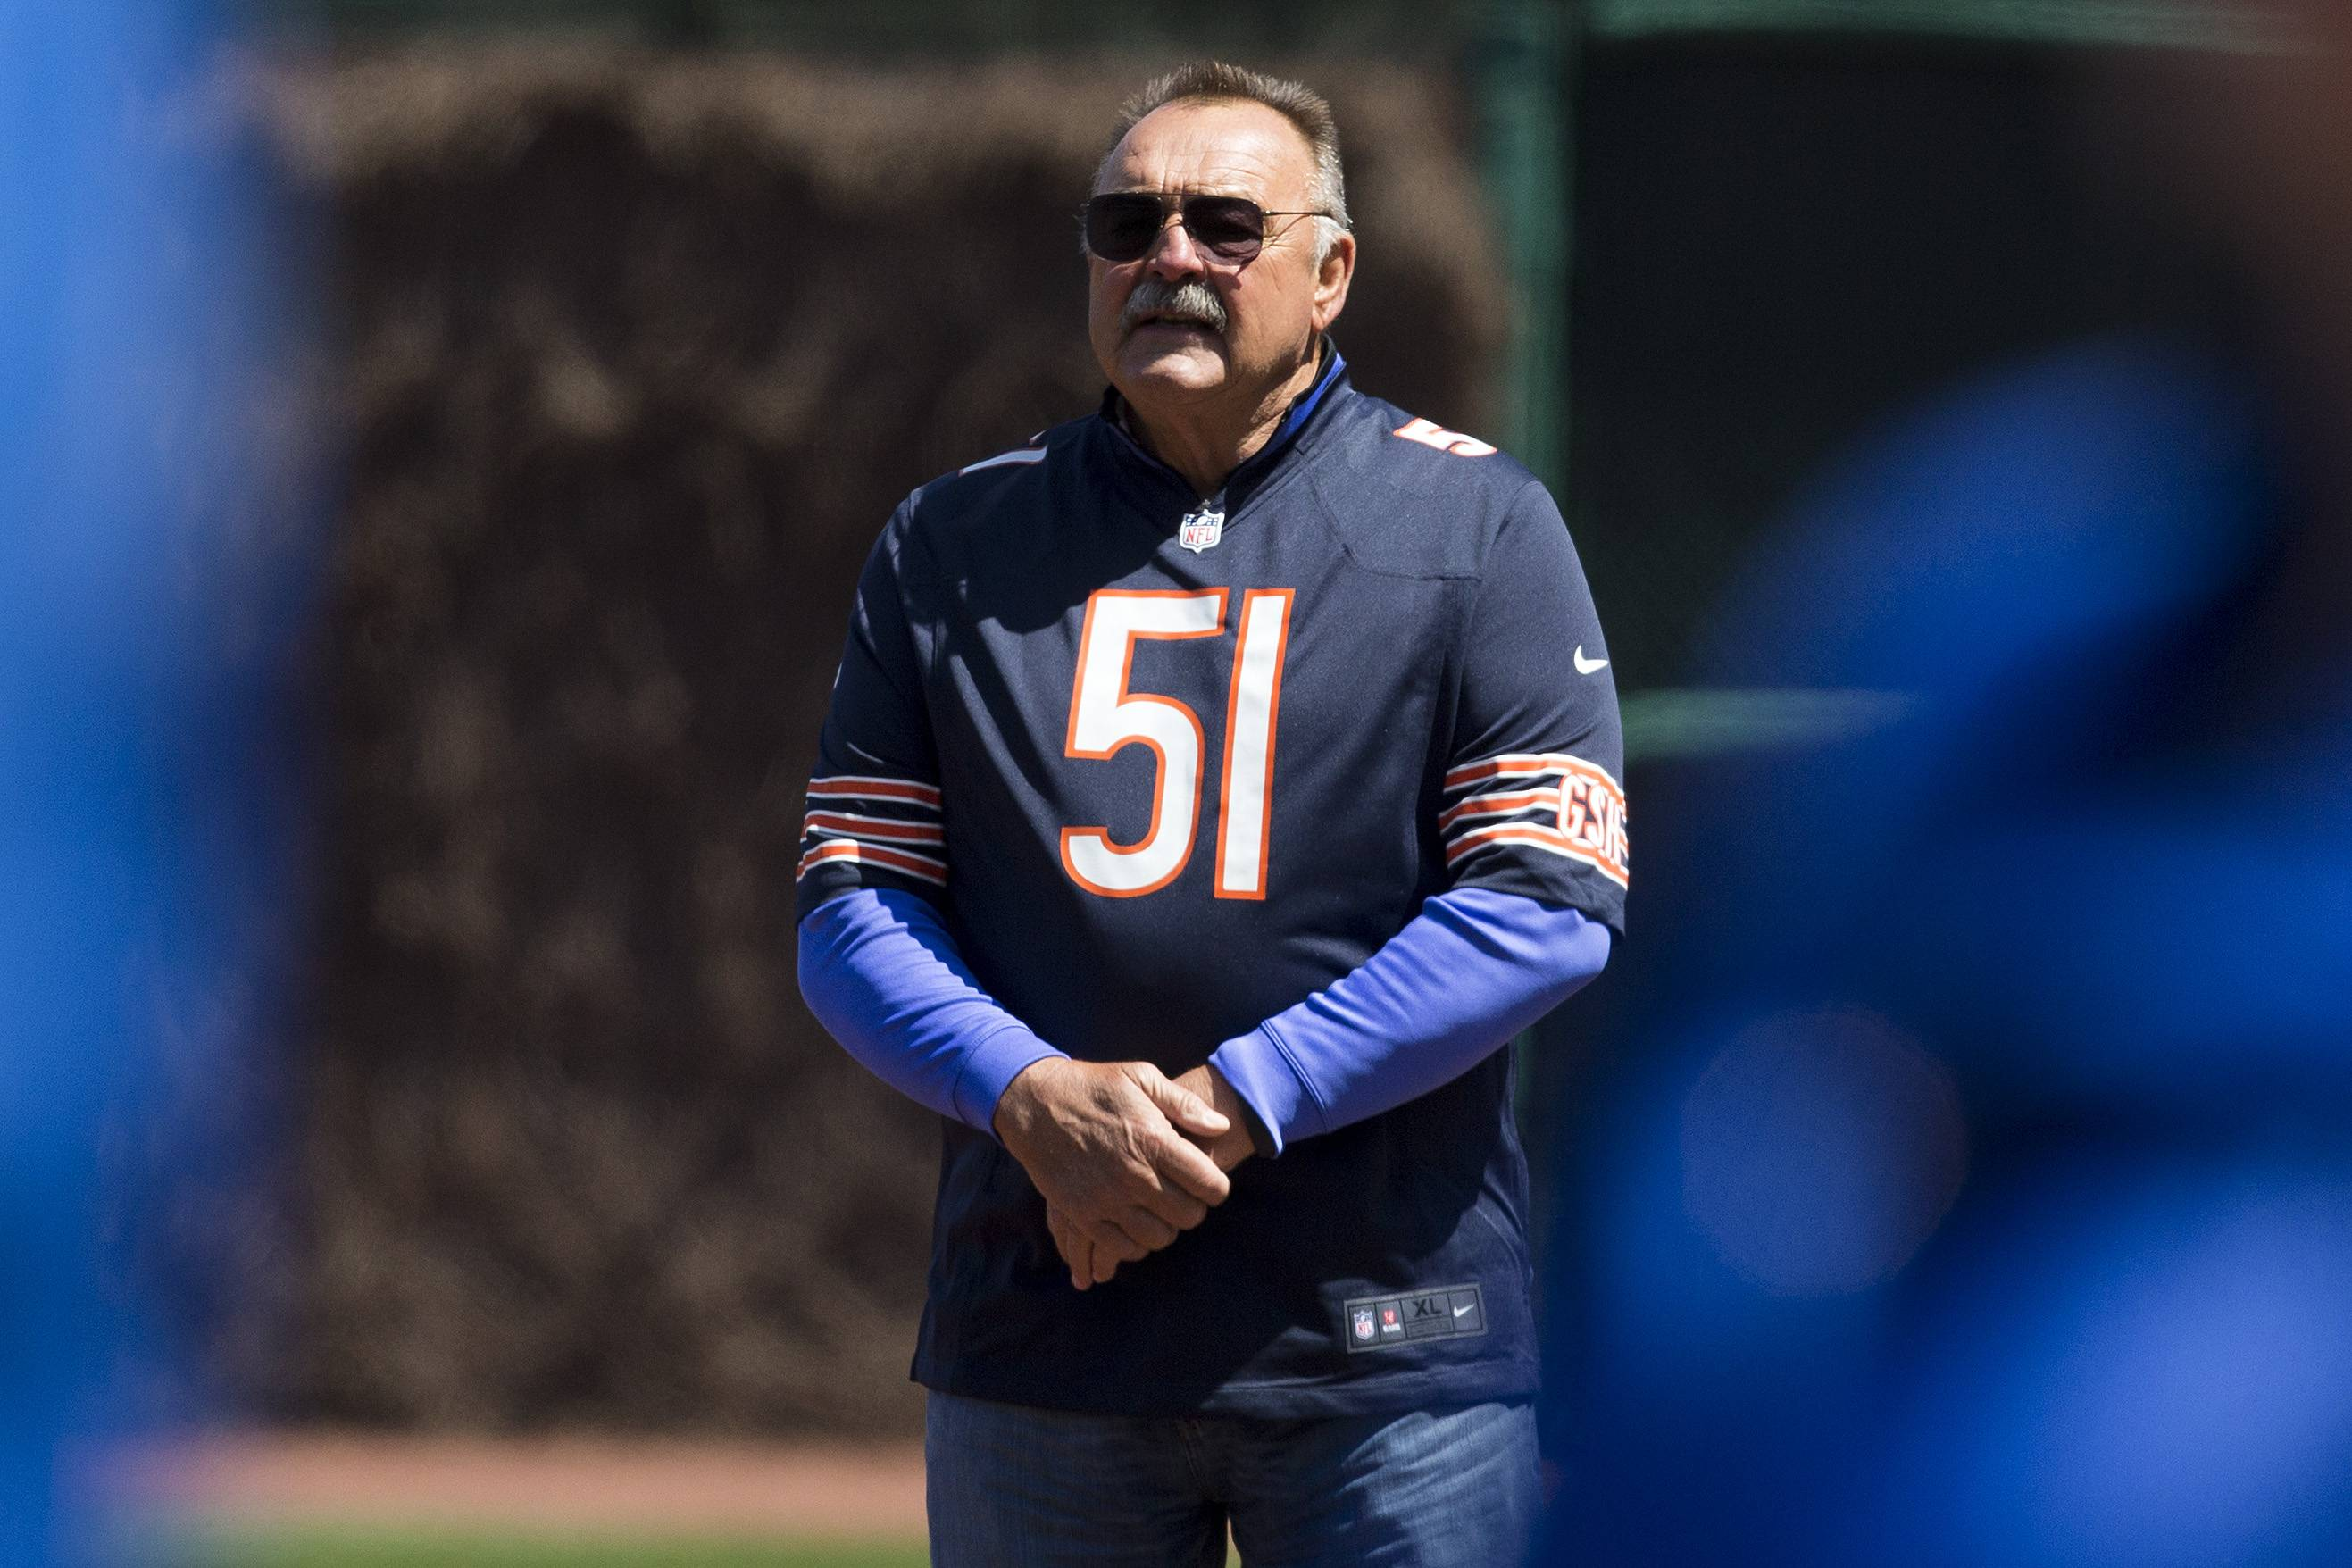 Hall of Fame linebacker Dick Butkus, who played for the Bears at Wrigley Field, is recognized Wednesday during pregame ceremonies marking the 100th birthday of Wrigley Field.